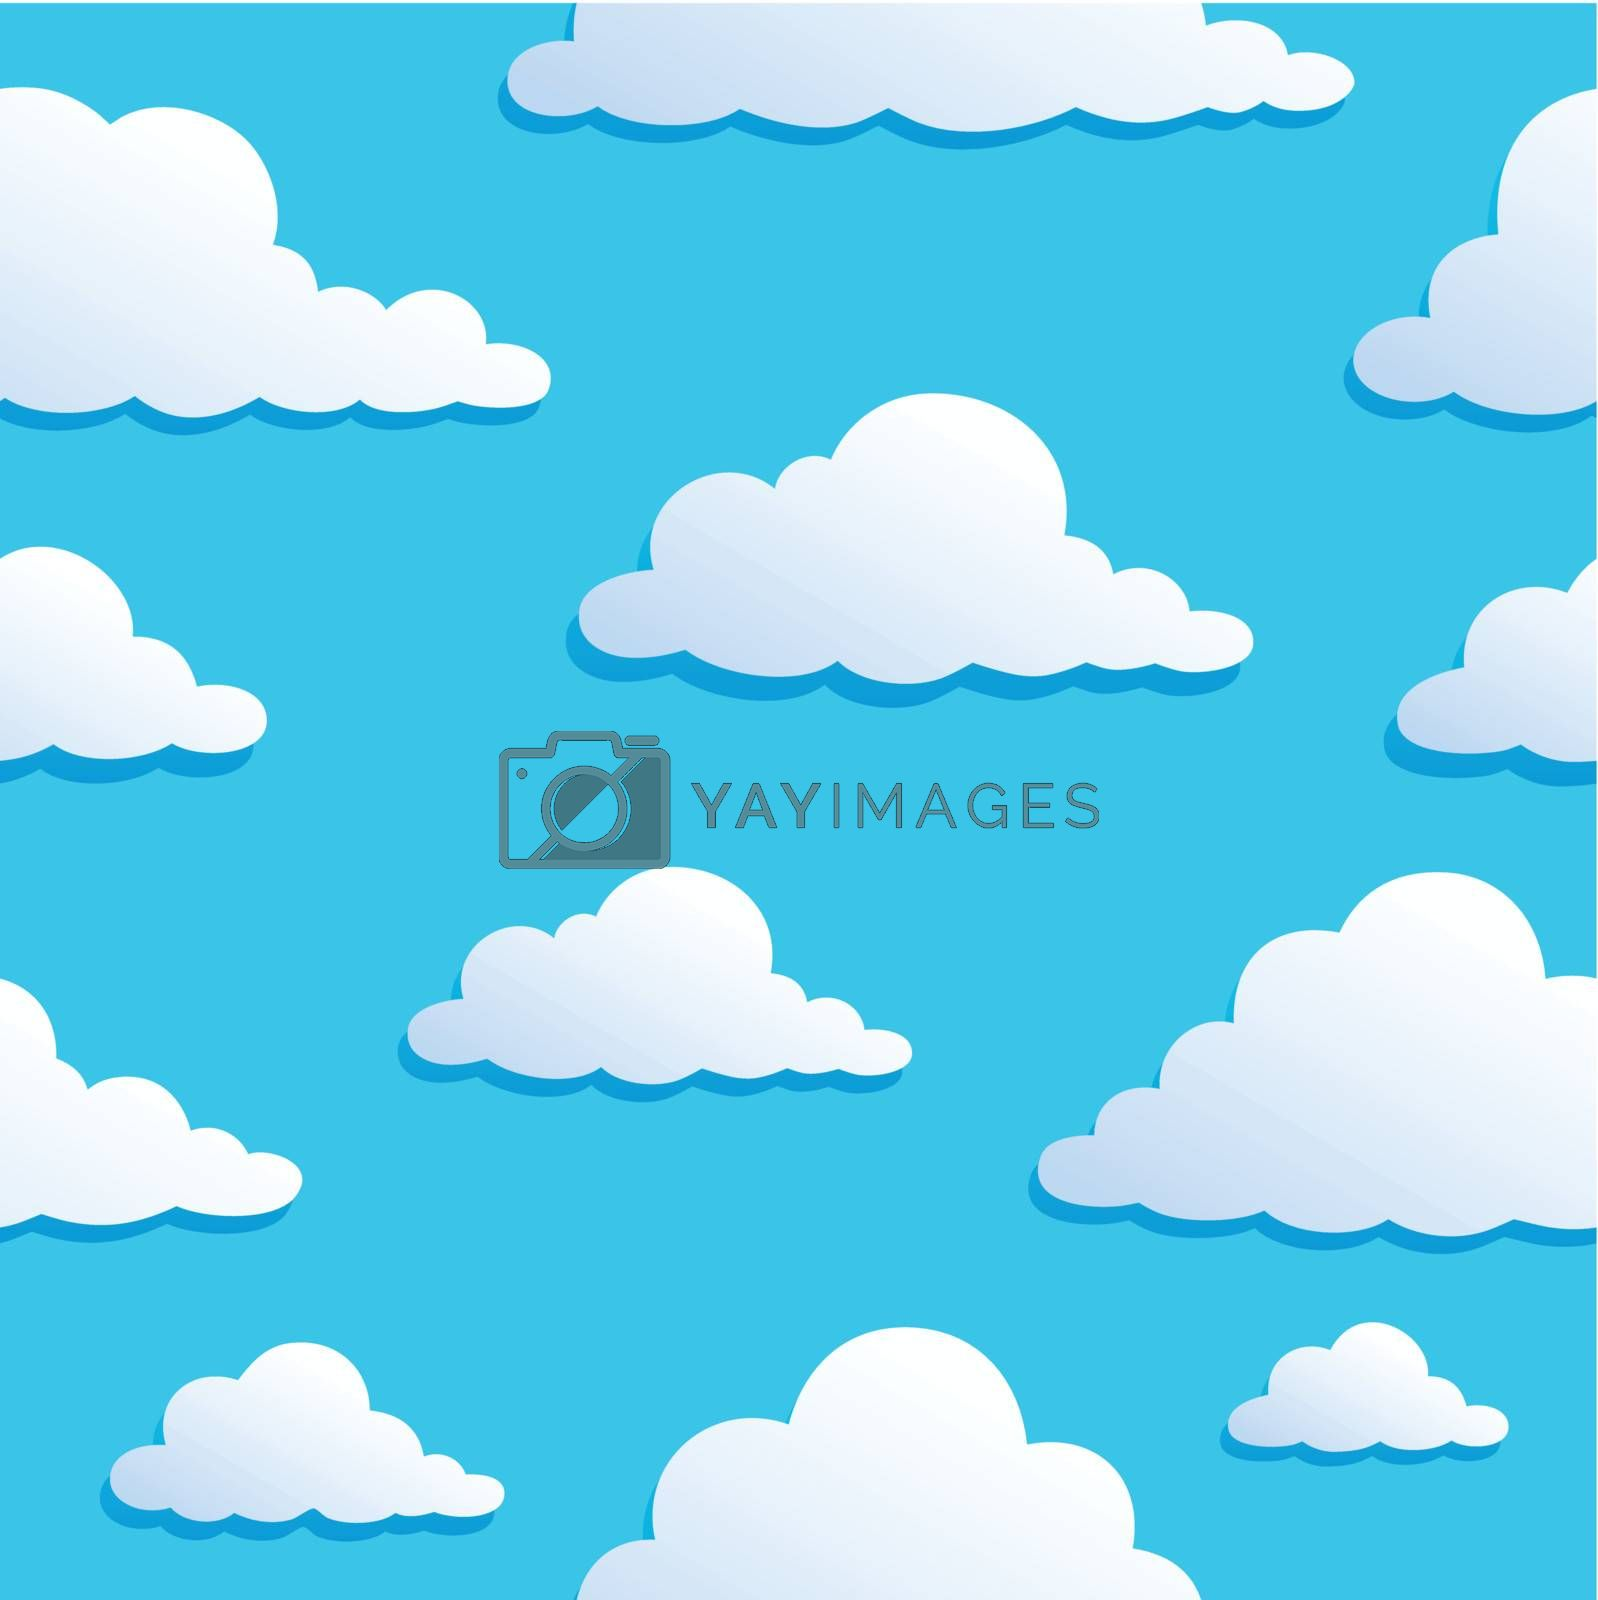 Seamless background with clouds 8 - vector illustration.